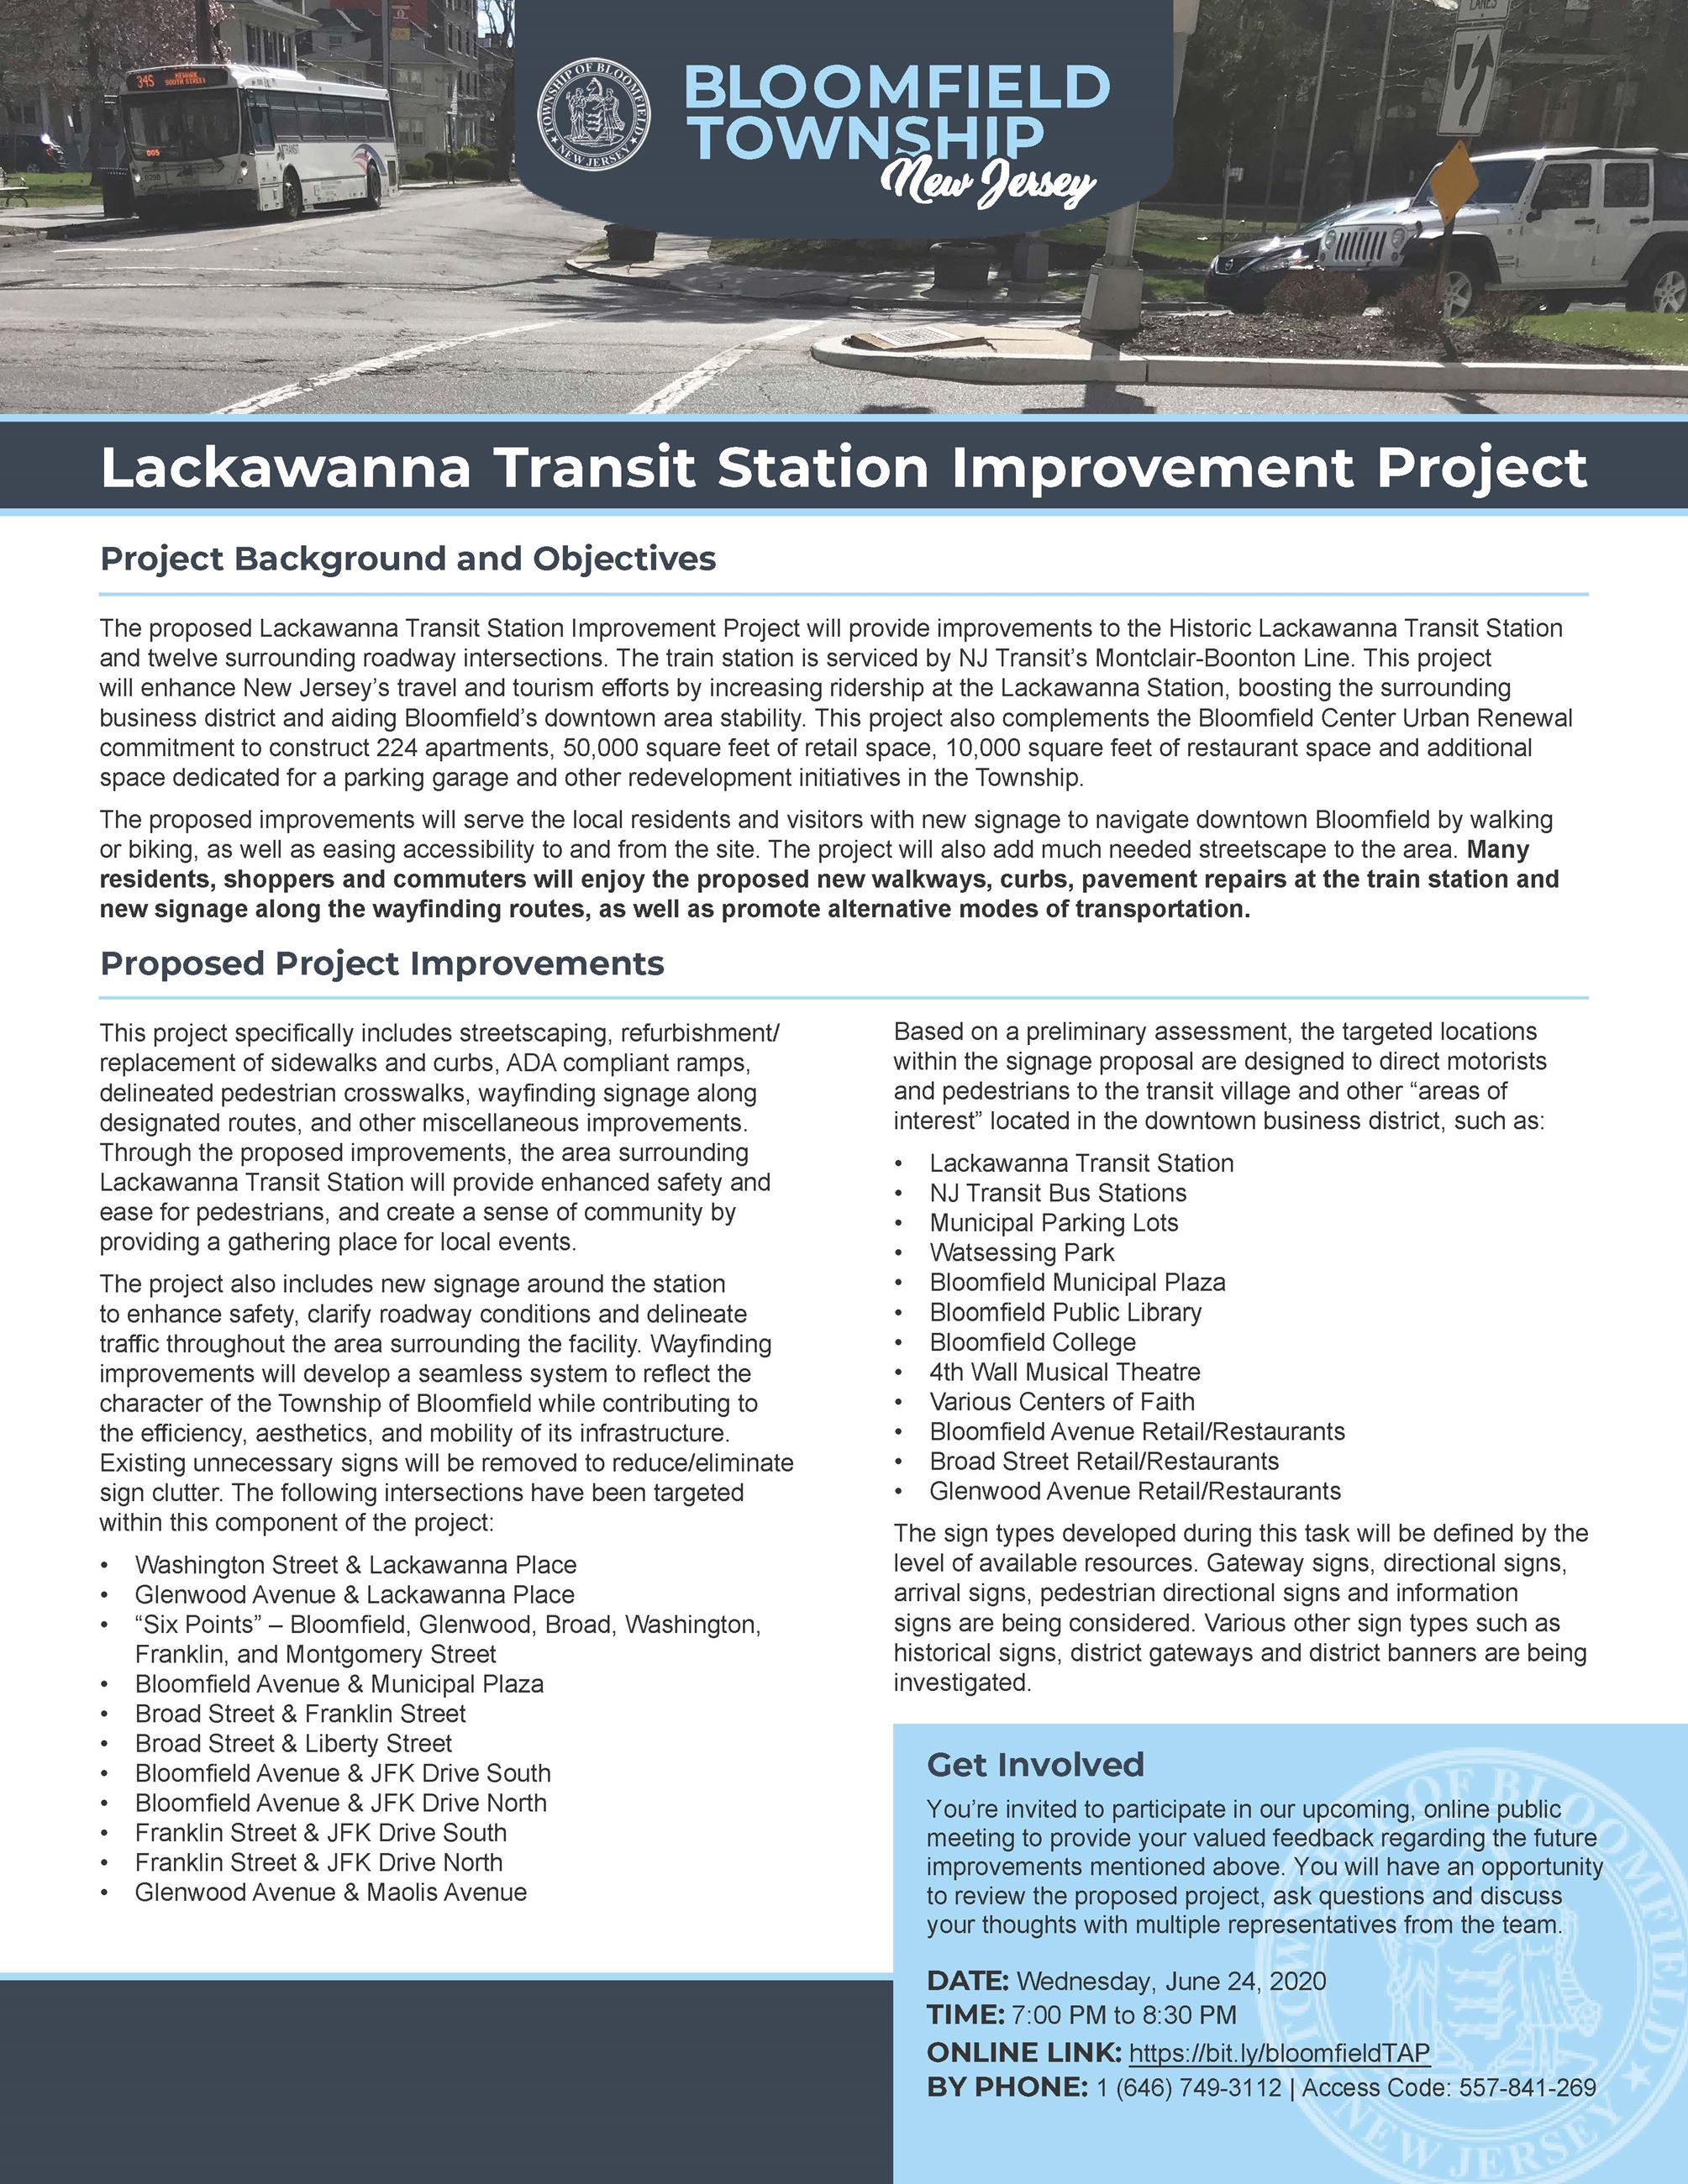 Lackawanna Transit Station Improvement Project overview flyer (PIC)